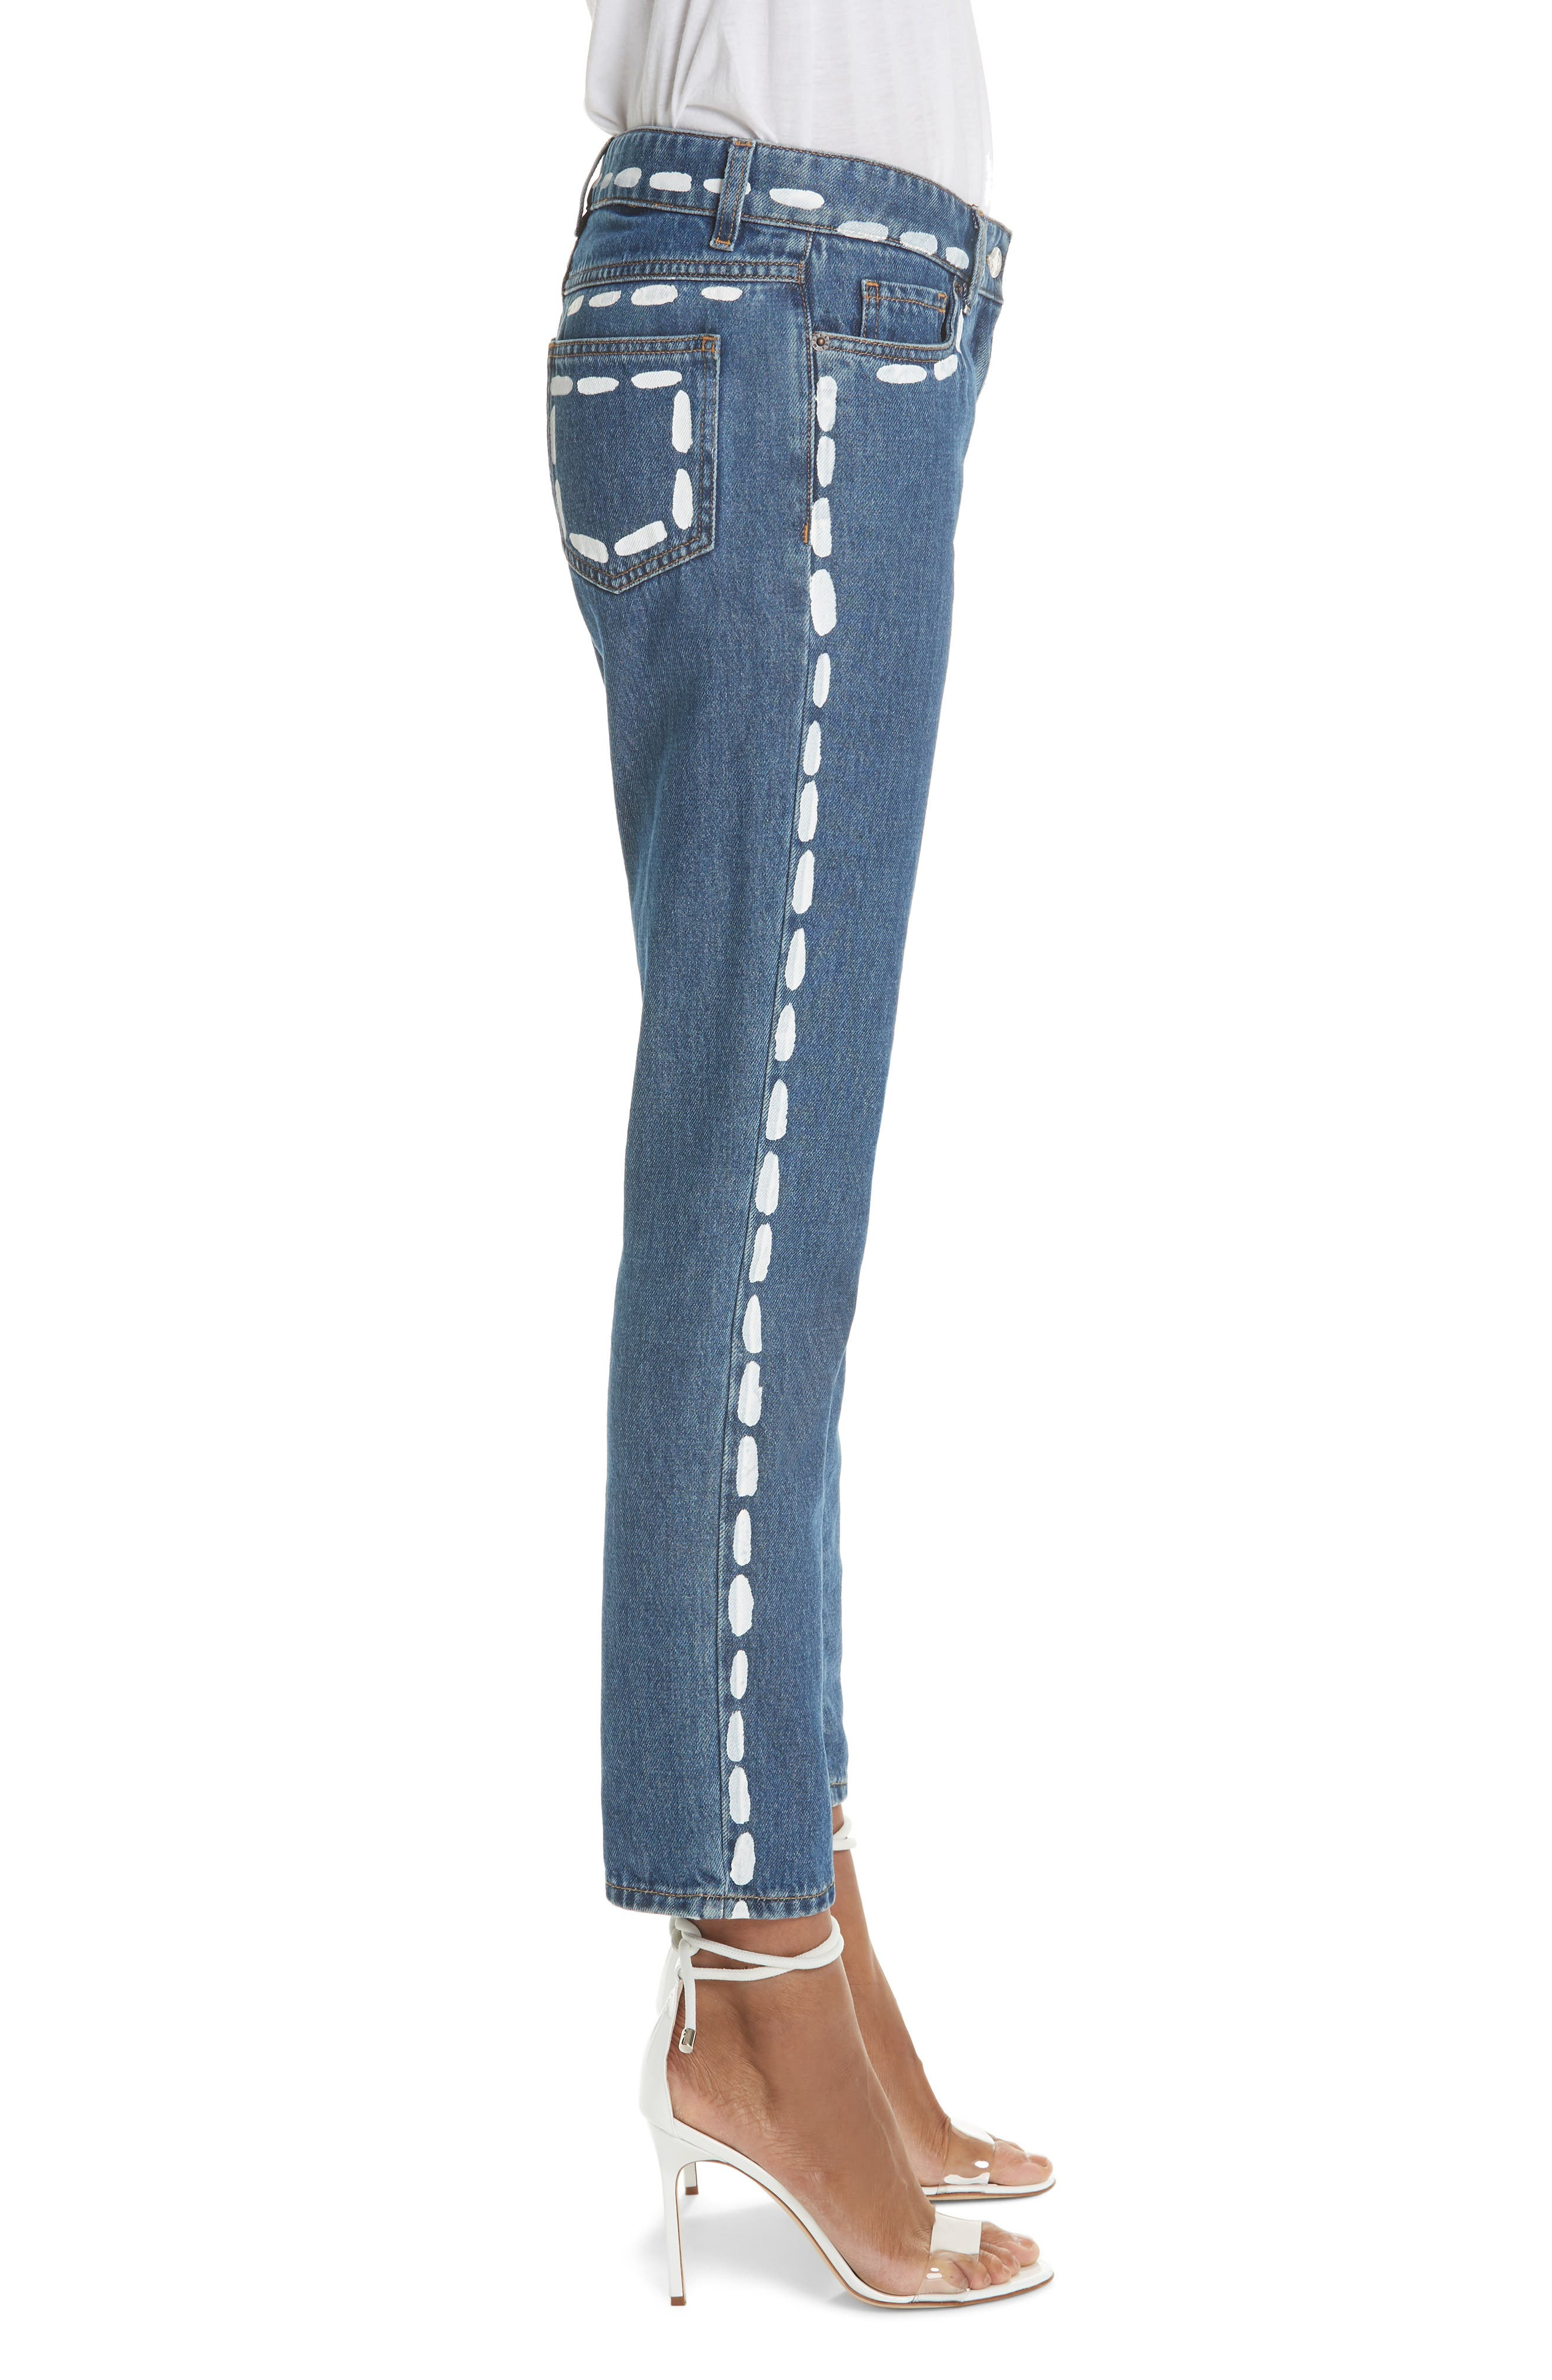 MOSCHINO,                             Dotted Line Straight Leg Jeans,                             Alternate thumbnail 3, color,                             DENIM